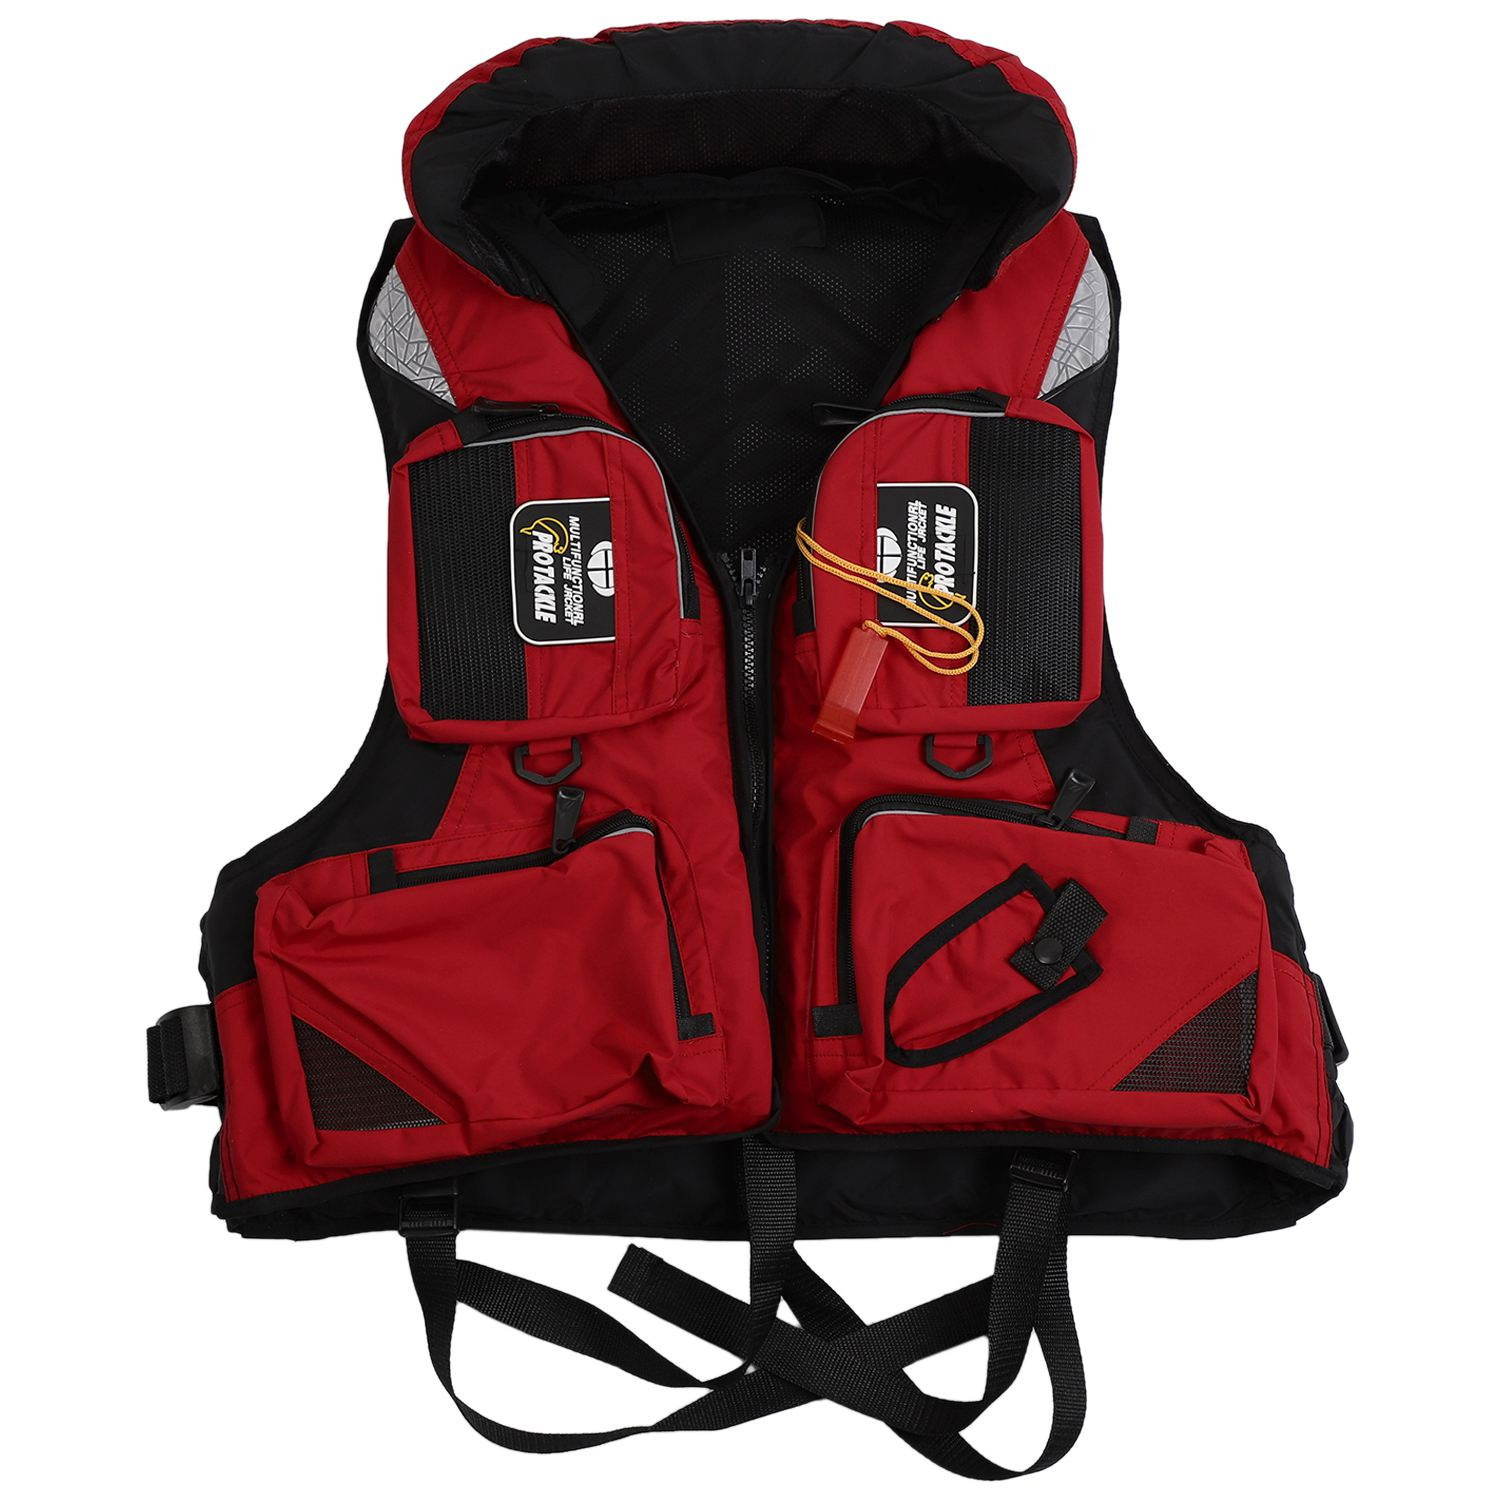 DSGS Adult Adjustable Buoyancy Aid Swimming Boating Sailing Fishing Kayak Life Jacket Vest Preservers image